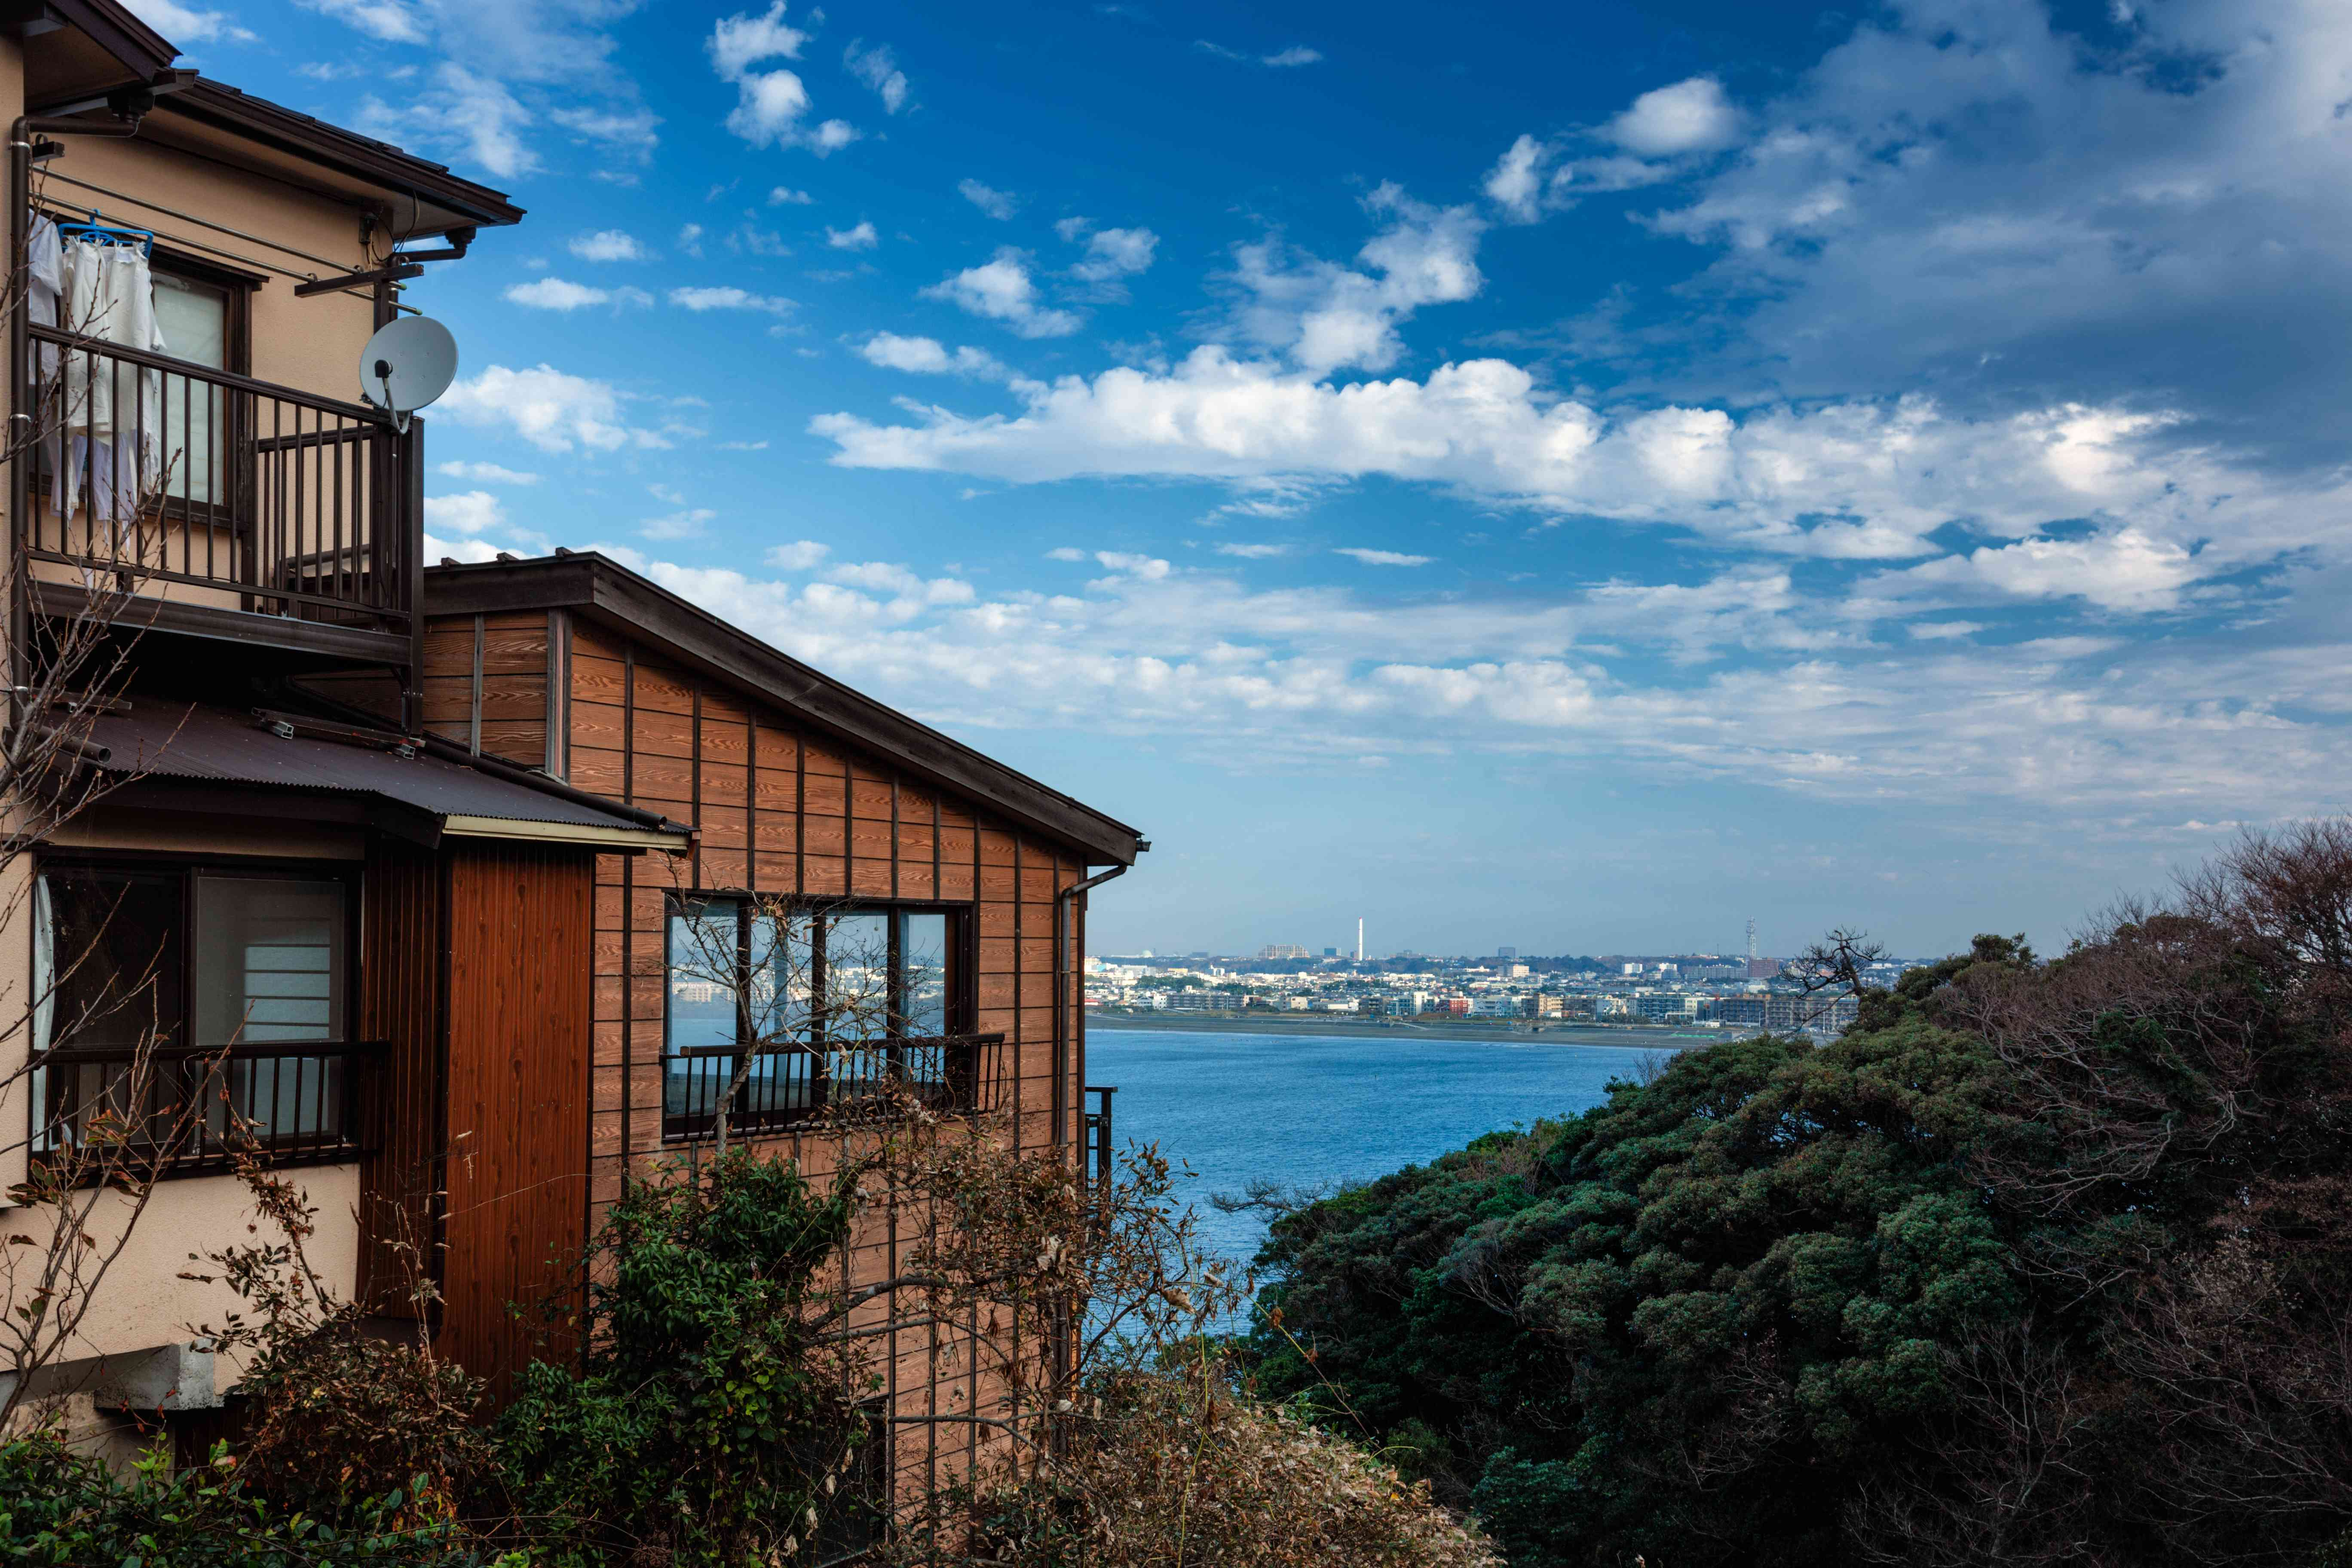 Old fisher houses in Enoshima, Japan